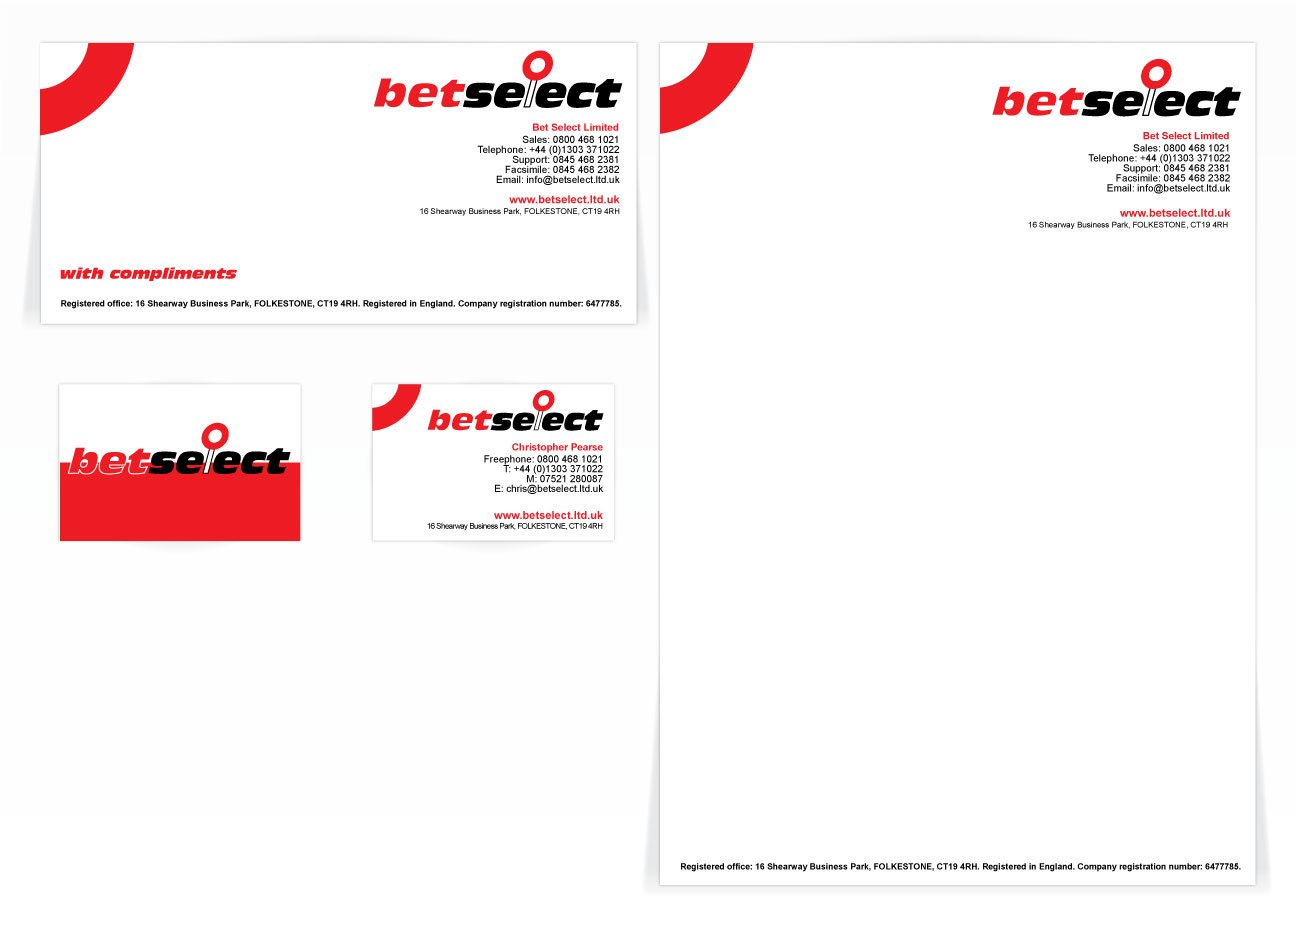 A compliment slip, letterhead and front and back business card design for Betselect. Designed by am:pm graphics.